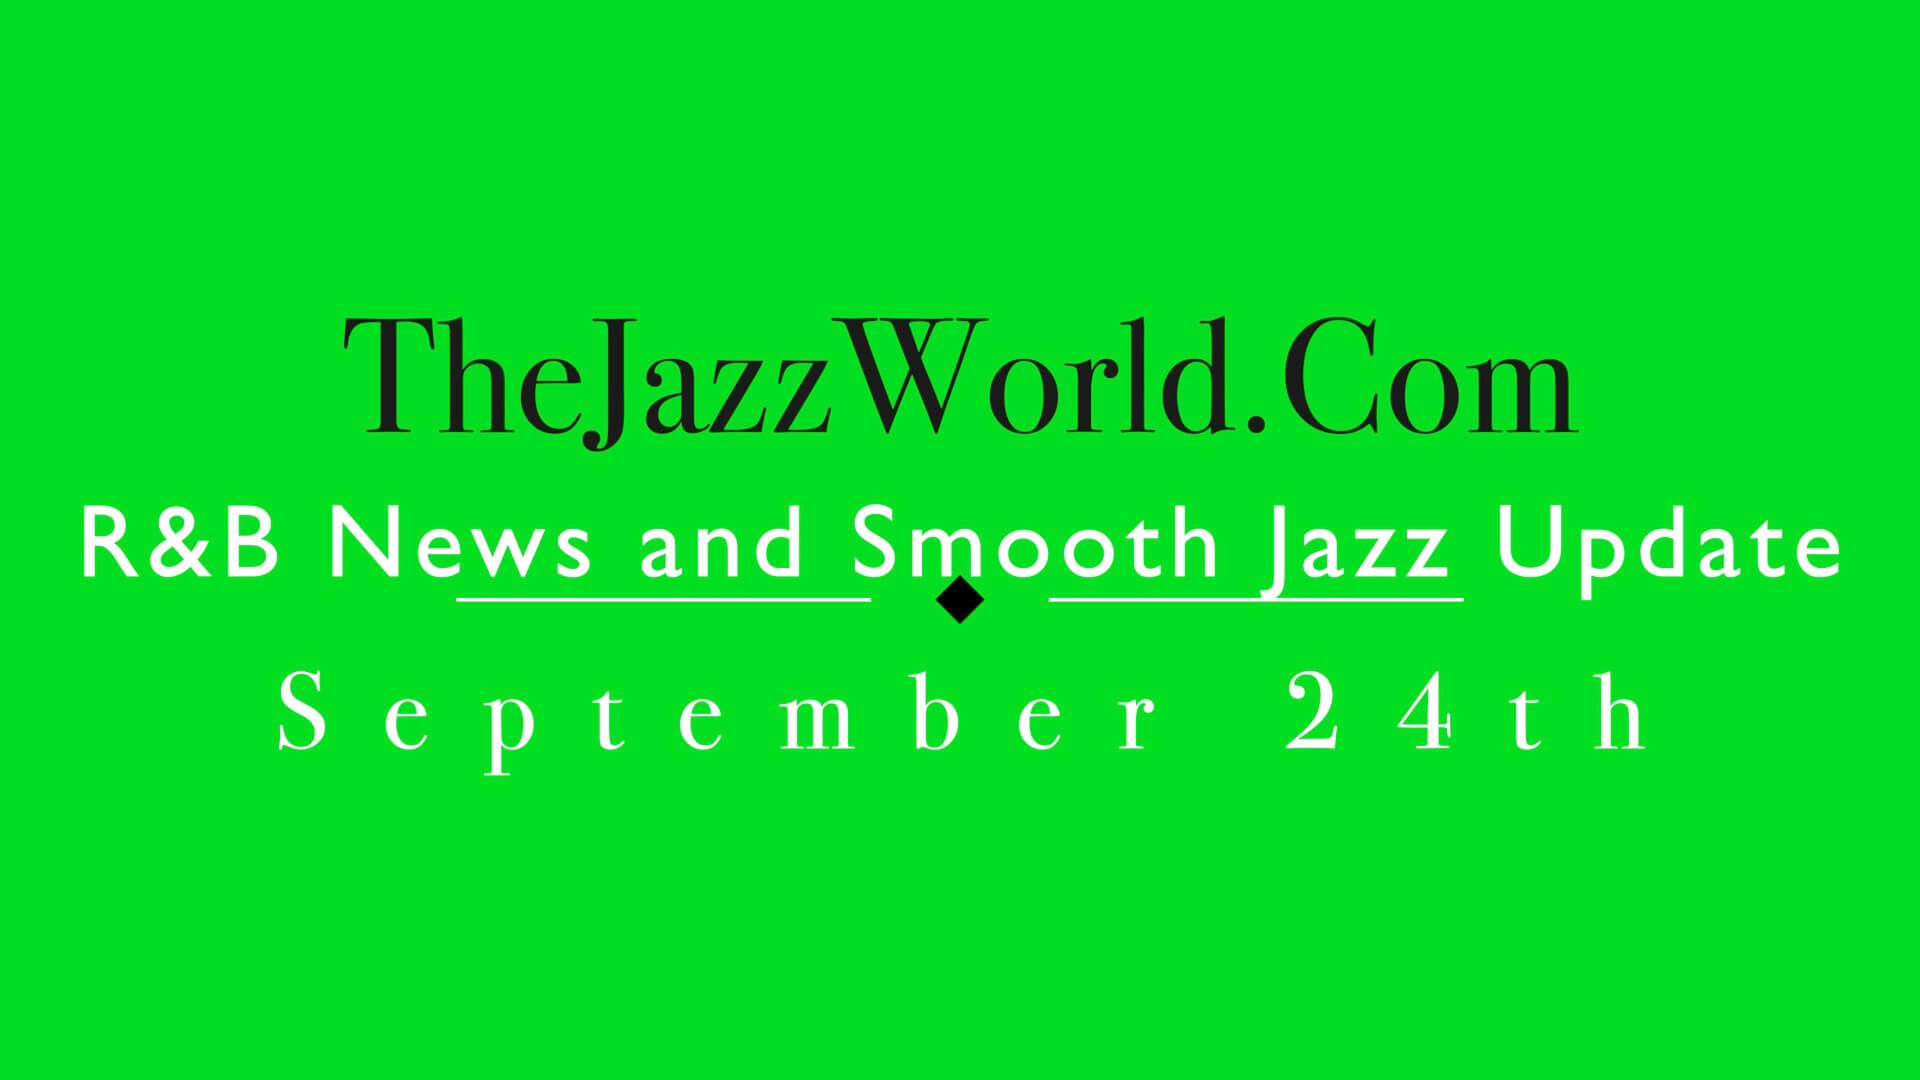 The Jazz World Show 9:24